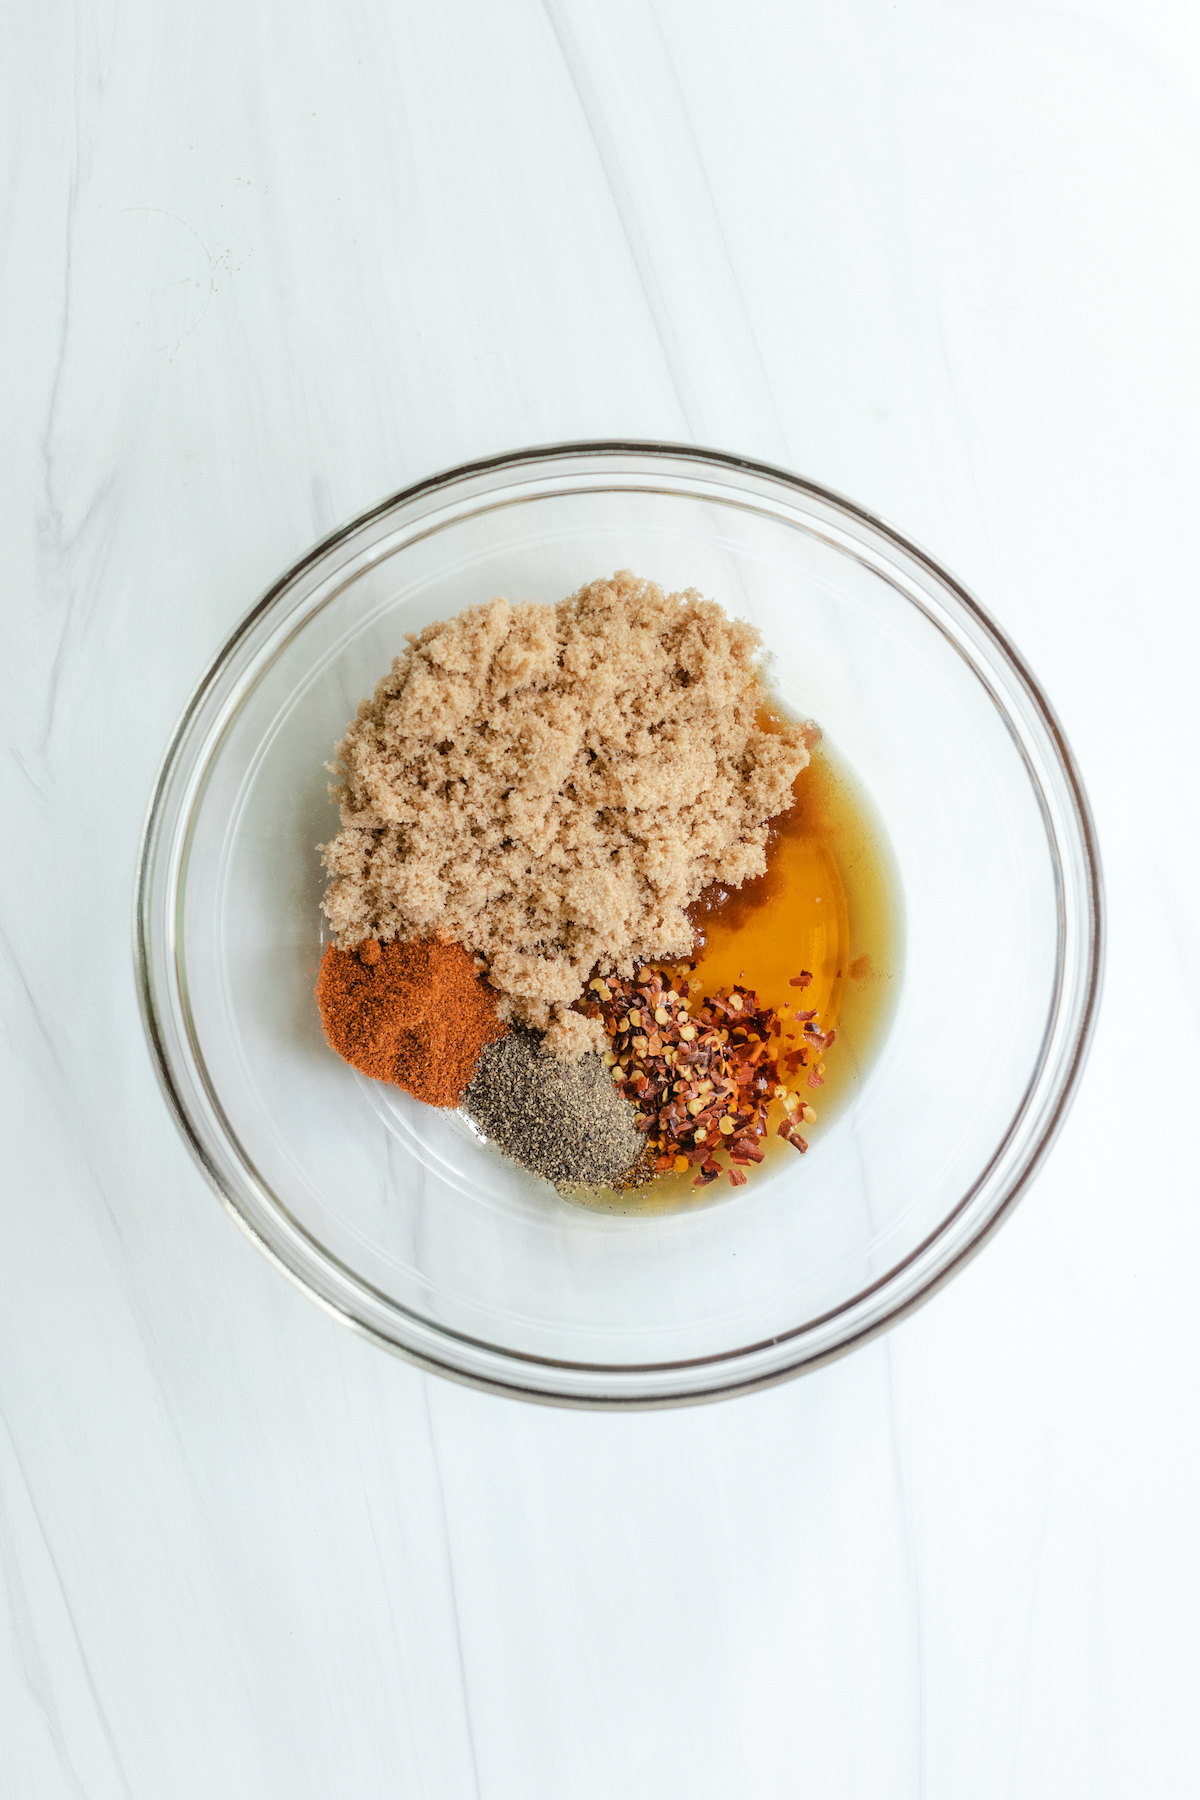 Spices, brown sugar and maple syrup in a glass mixing bowl - ingredients for Million Dollar Bacon